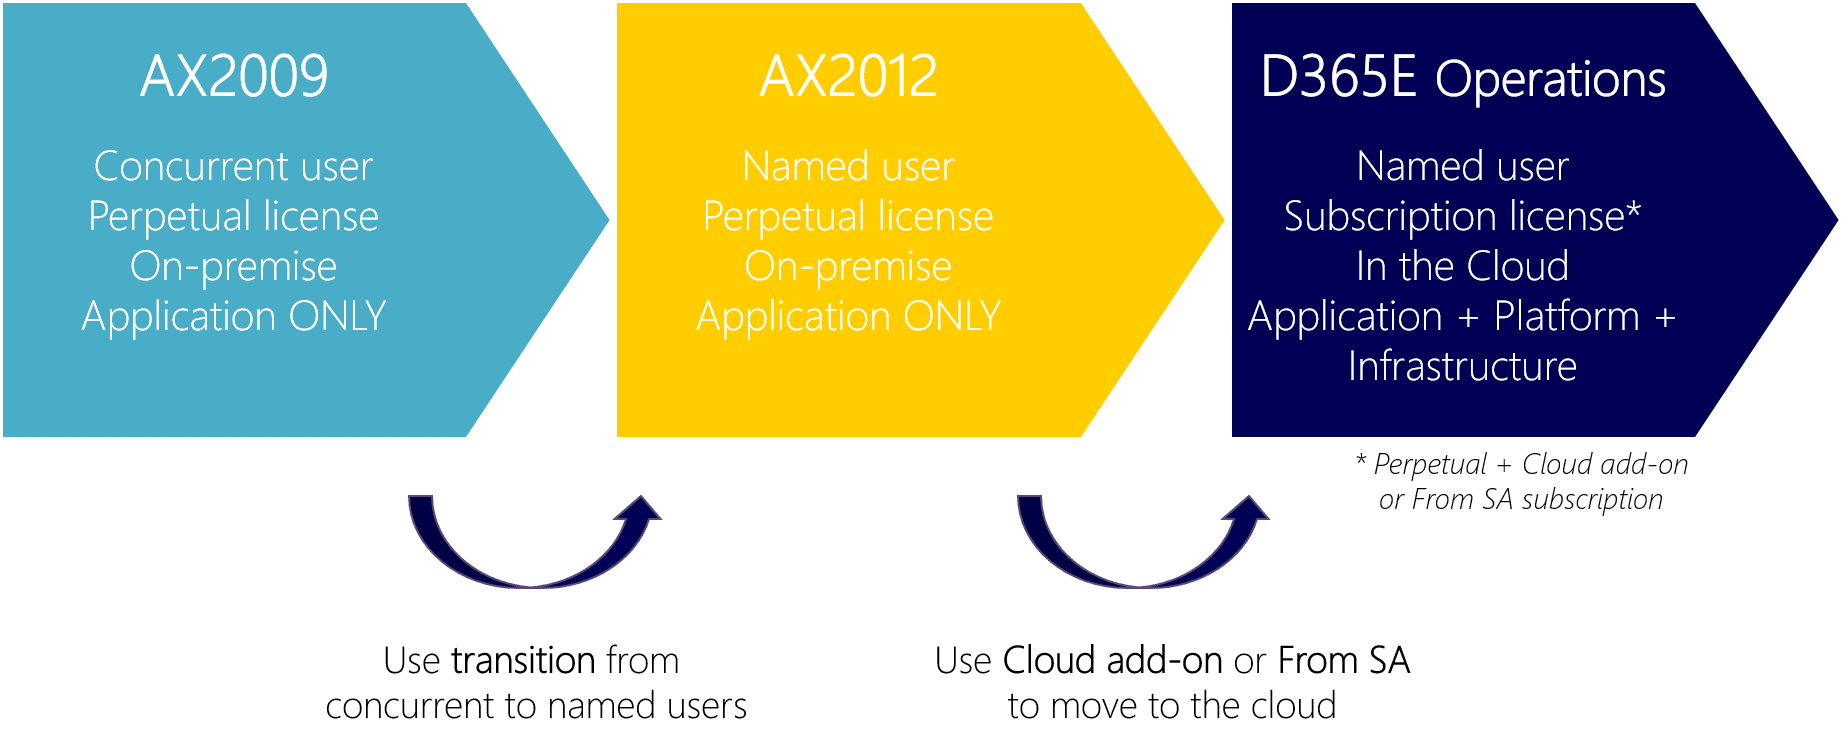 There's one more step if you're currently on AX09 and would like to transition to Dynamics 365